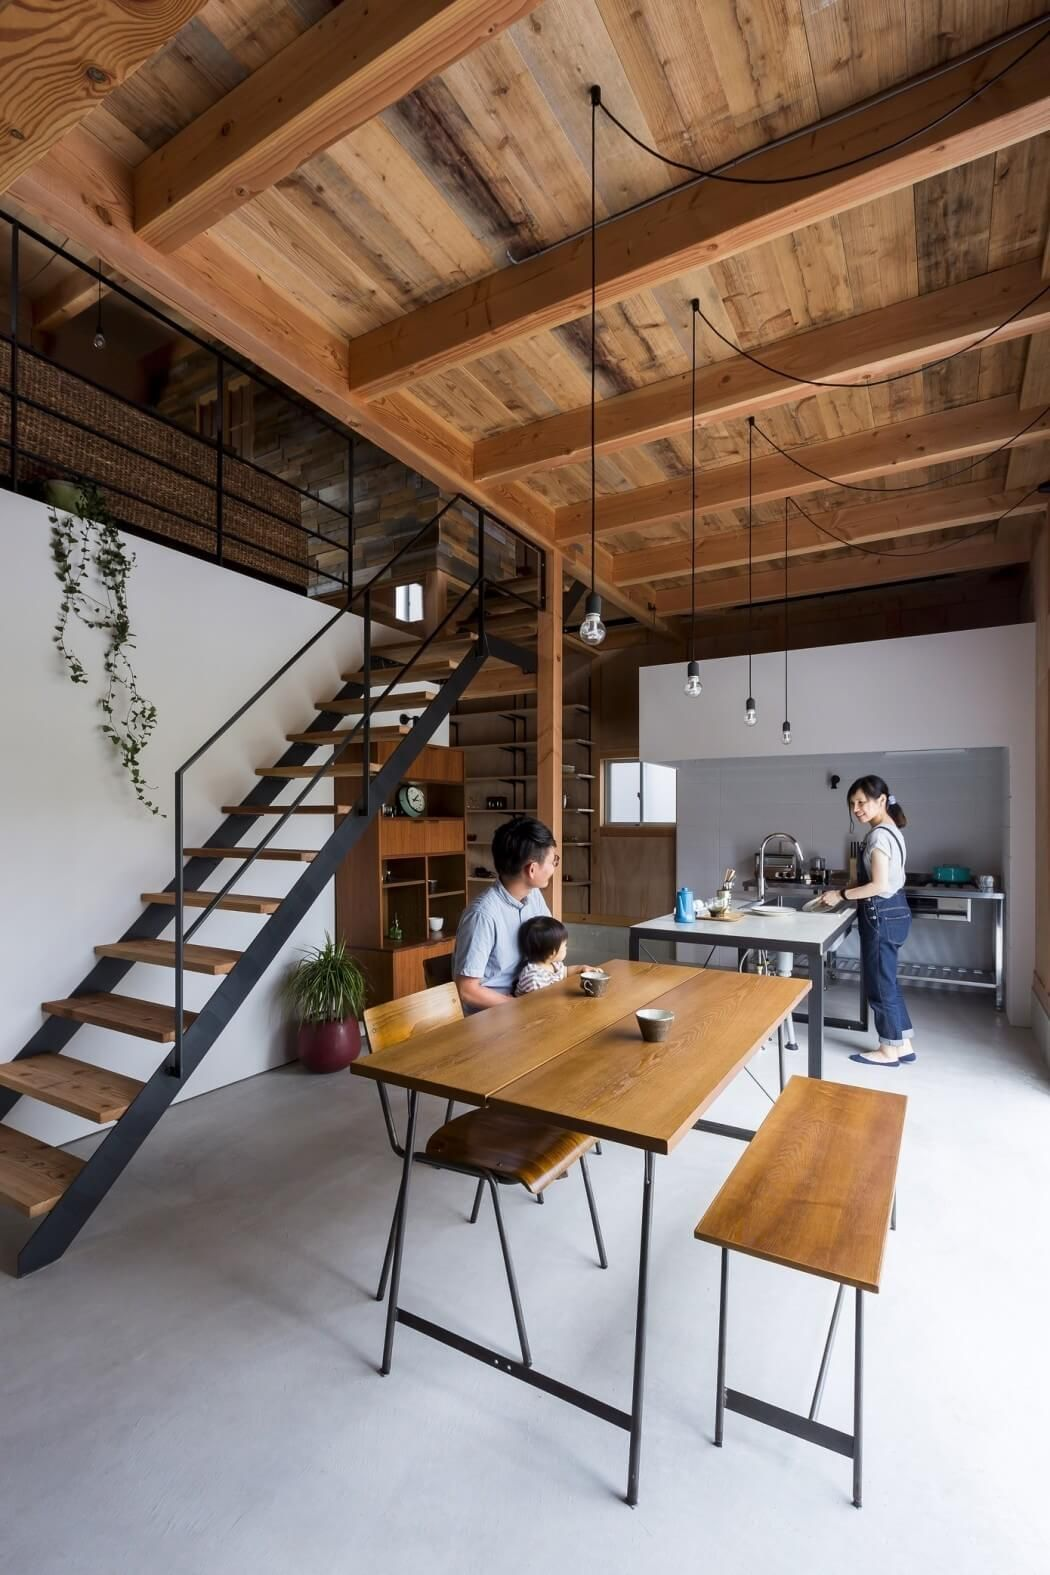 Ishibe House by Alts Design Office | House, Interiors and Lofts